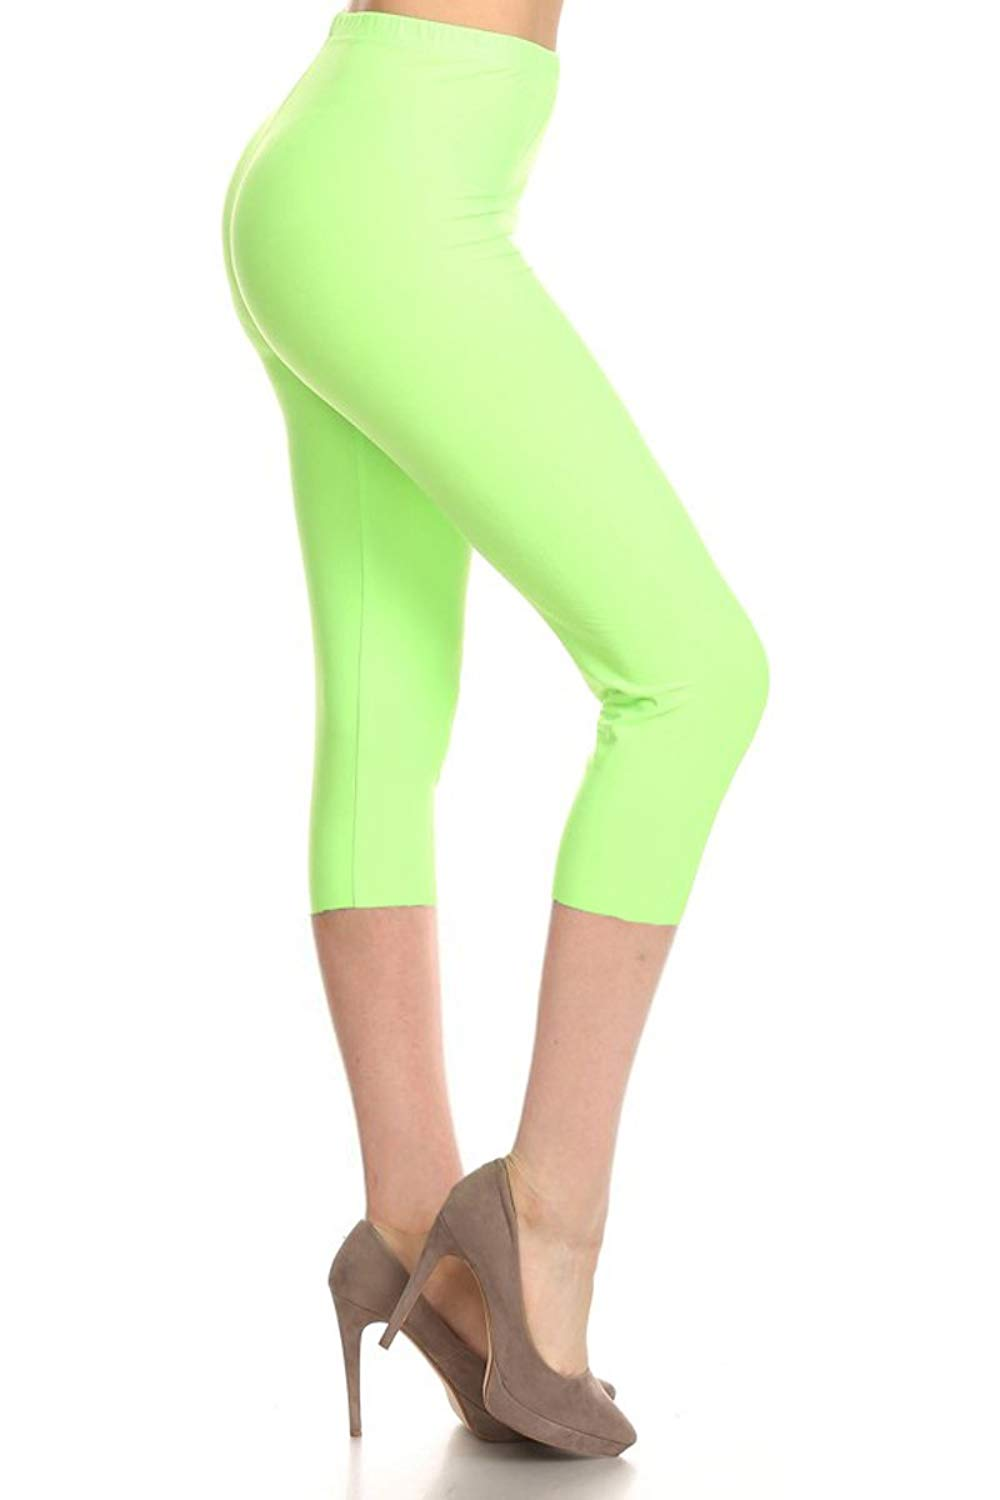 Athletic Yoga Leggings from DiaNoche Designs by Marley Ungaro Bloodhound Aqua